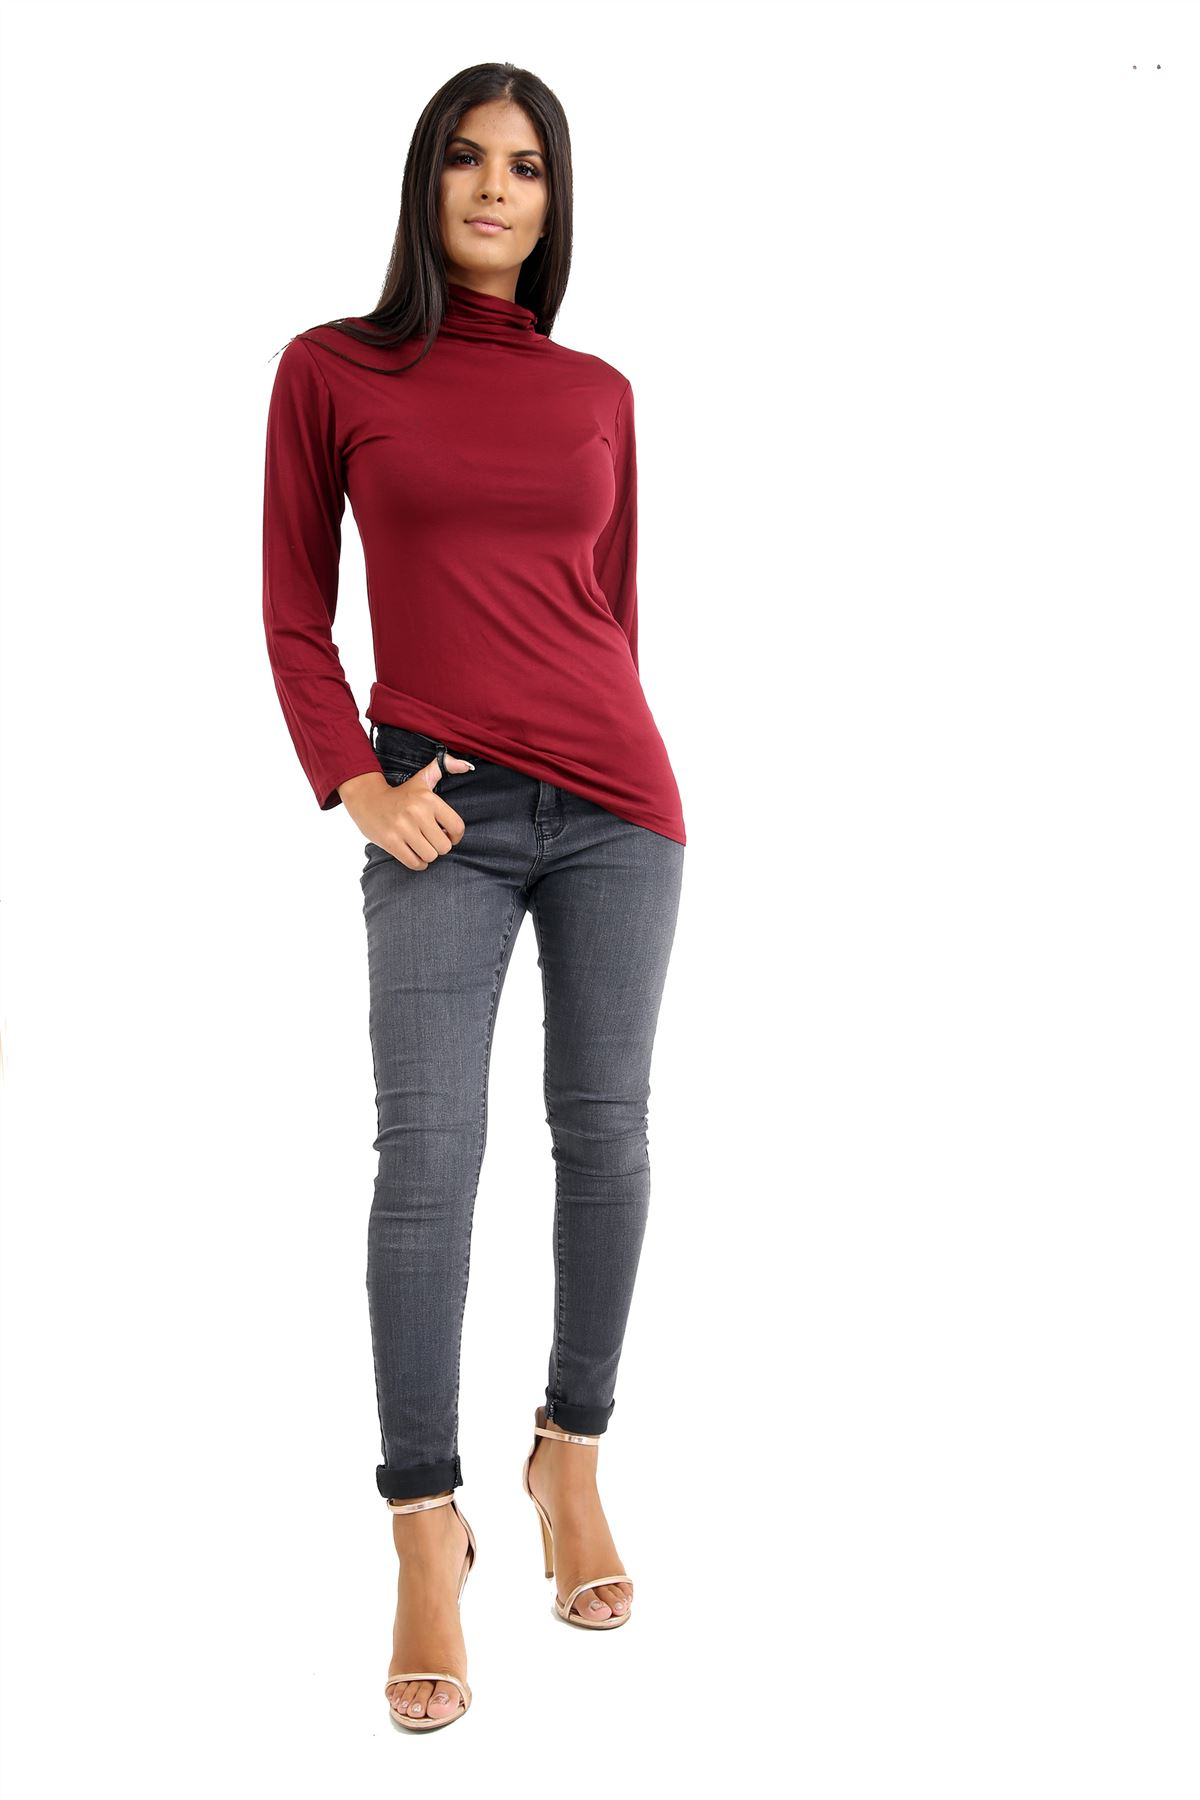 New-Ladies-Long-Sleeve-Plain-Turtle-Polo-Roll-Neck-Stretch-Jumper-T-Shirt-TeeTop thumbnail 131